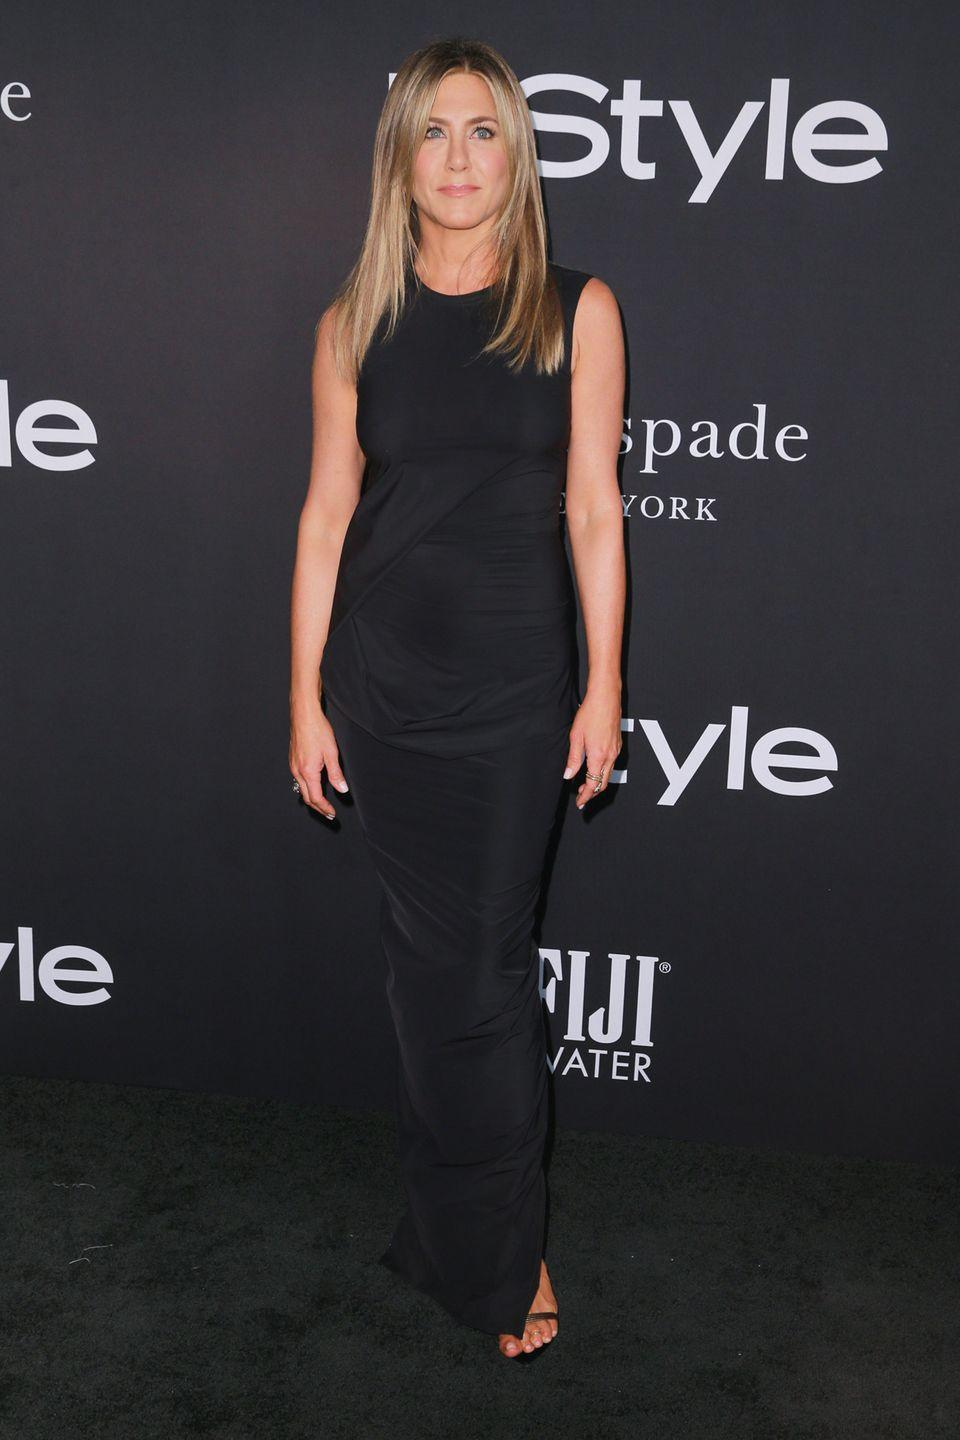 "<p>Hey, Jen does. ""She's very diligent. She is ready to work out hard, every single time she hits the gym,"" Azubuike told <em><a href=""https://people.com/health/jennifer-aniston-trainer-leyon-azubuike-boxing-workout/"" rel=""nofollow noopener"" target=""_blank"" data-ylk=""slk:People"" class=""link rapid-noclick-resp"">People</a></em>. ""Whether it be a 45-minute session, whether it be a two-hour session, she's always ready to go.""</p>"